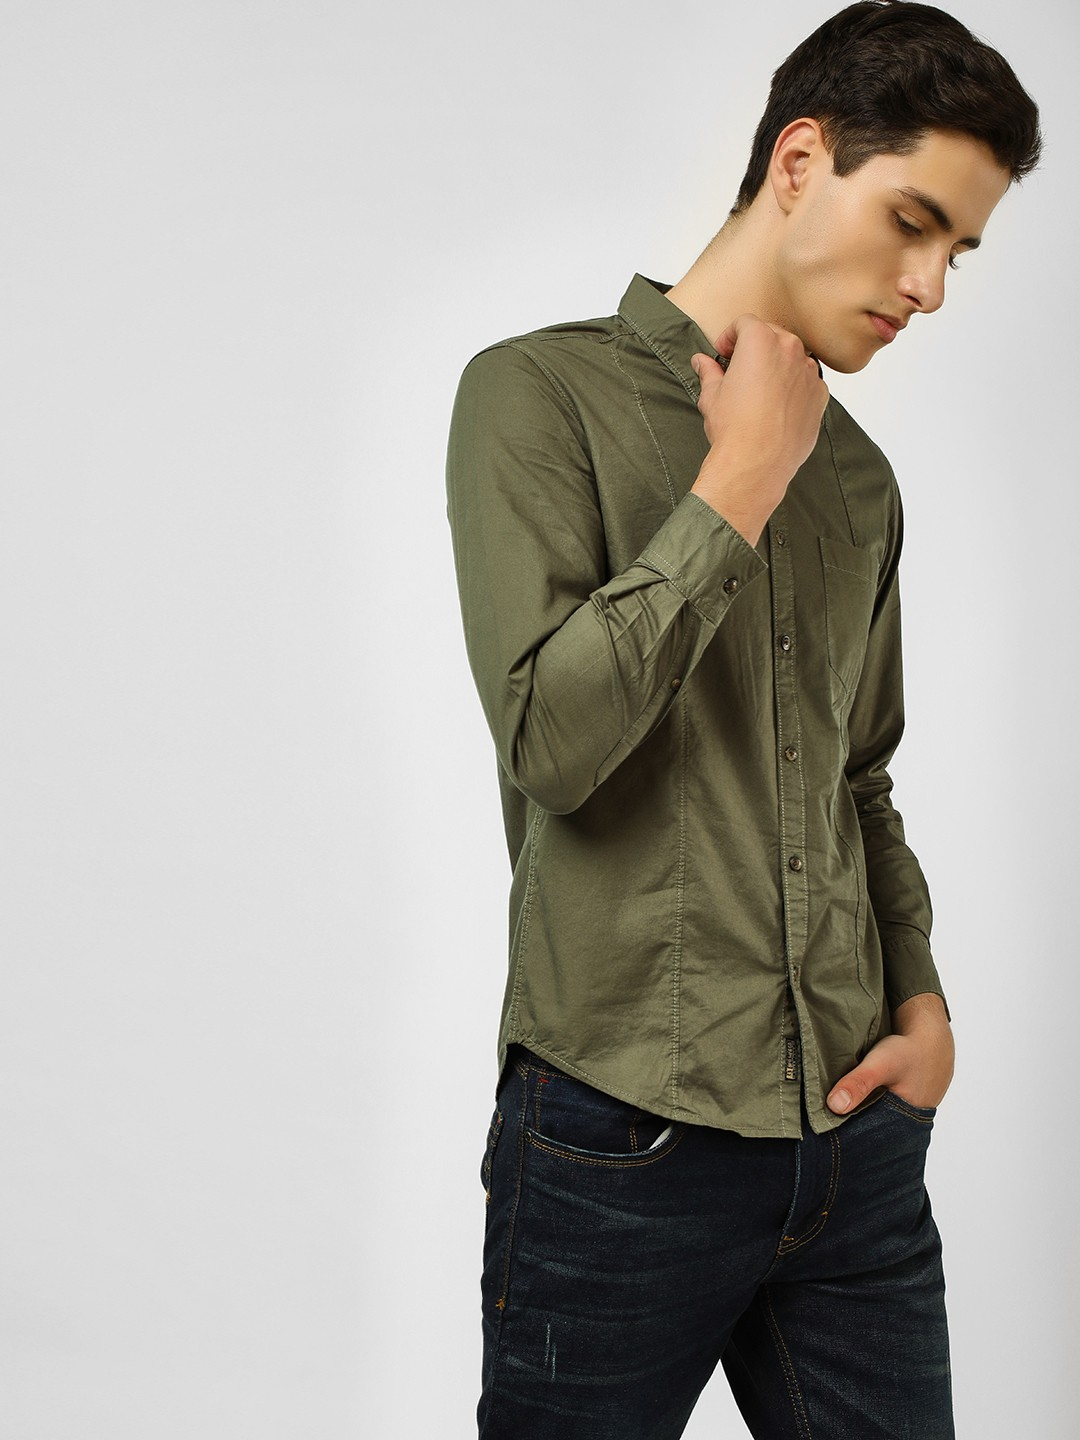 Buffalo Olive Basic Long Sleeve Casual Shirt 1